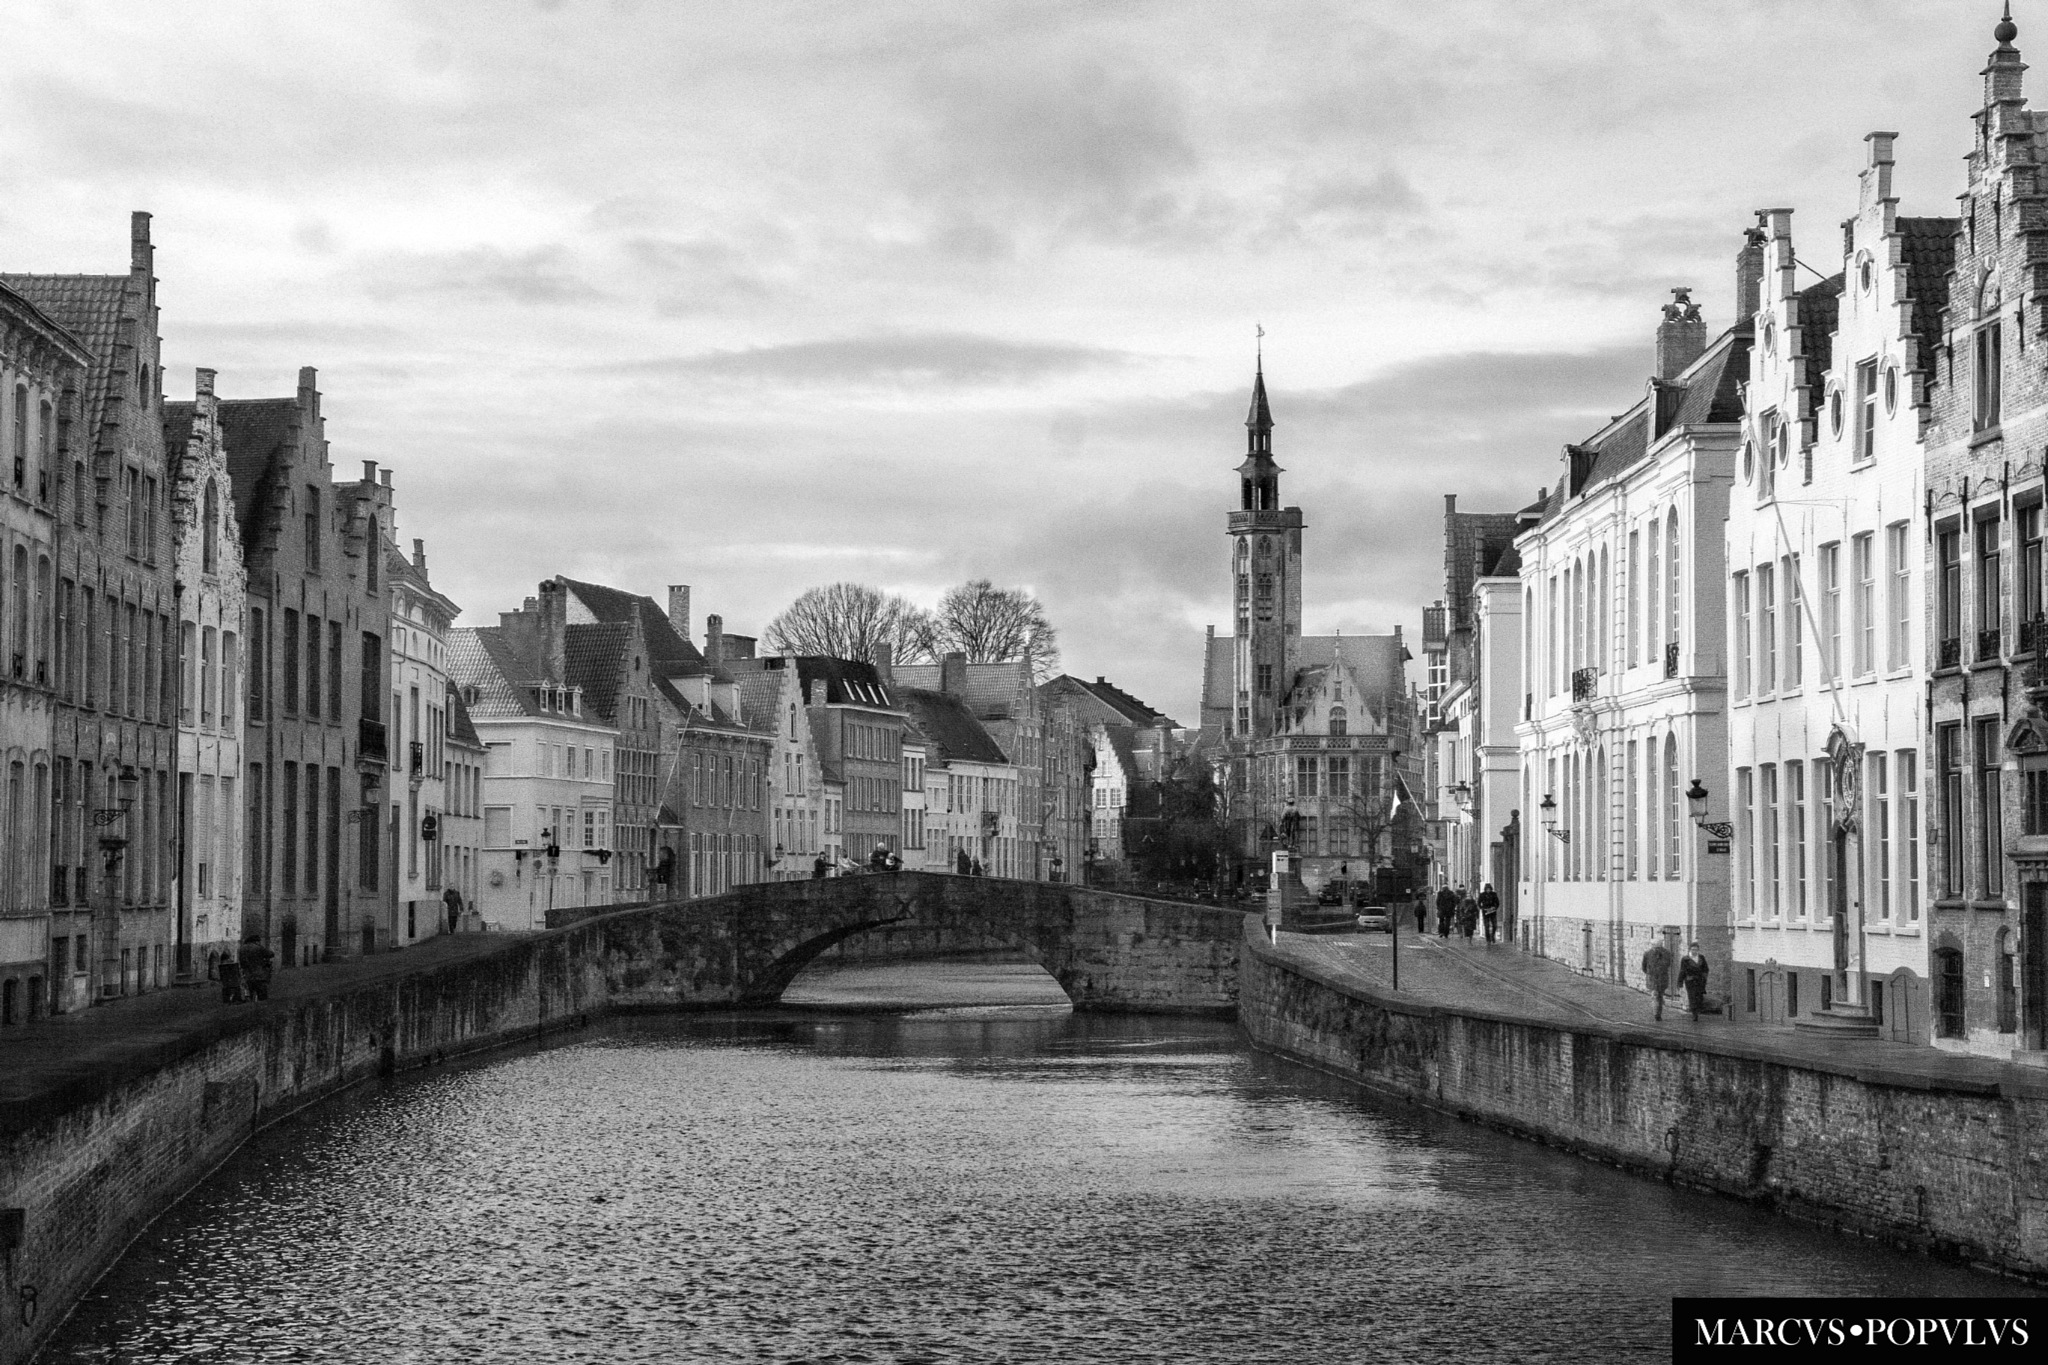 Brugge. by Marcus Populus